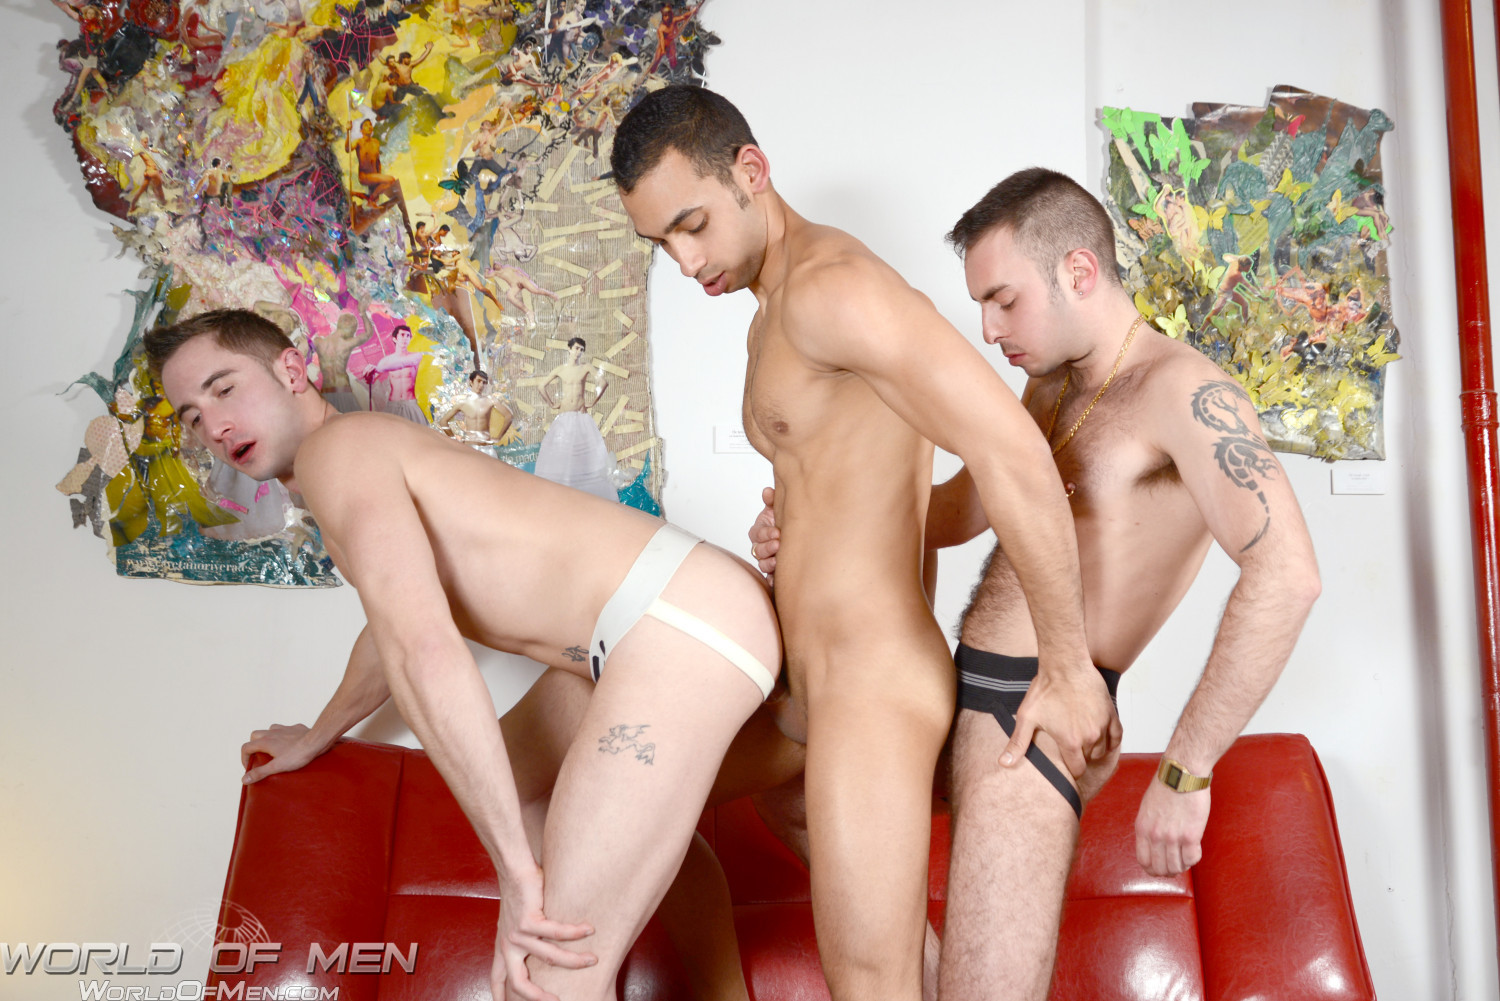 World-of-Men-Macanao-Torres-and-Juan-Lopez-and-Elio-Guzman-threeway-fucking-Amateur-Gay-Porn-09 Amatuer Gay Three Way Fucking At A Bathhouse in Madrid Spain